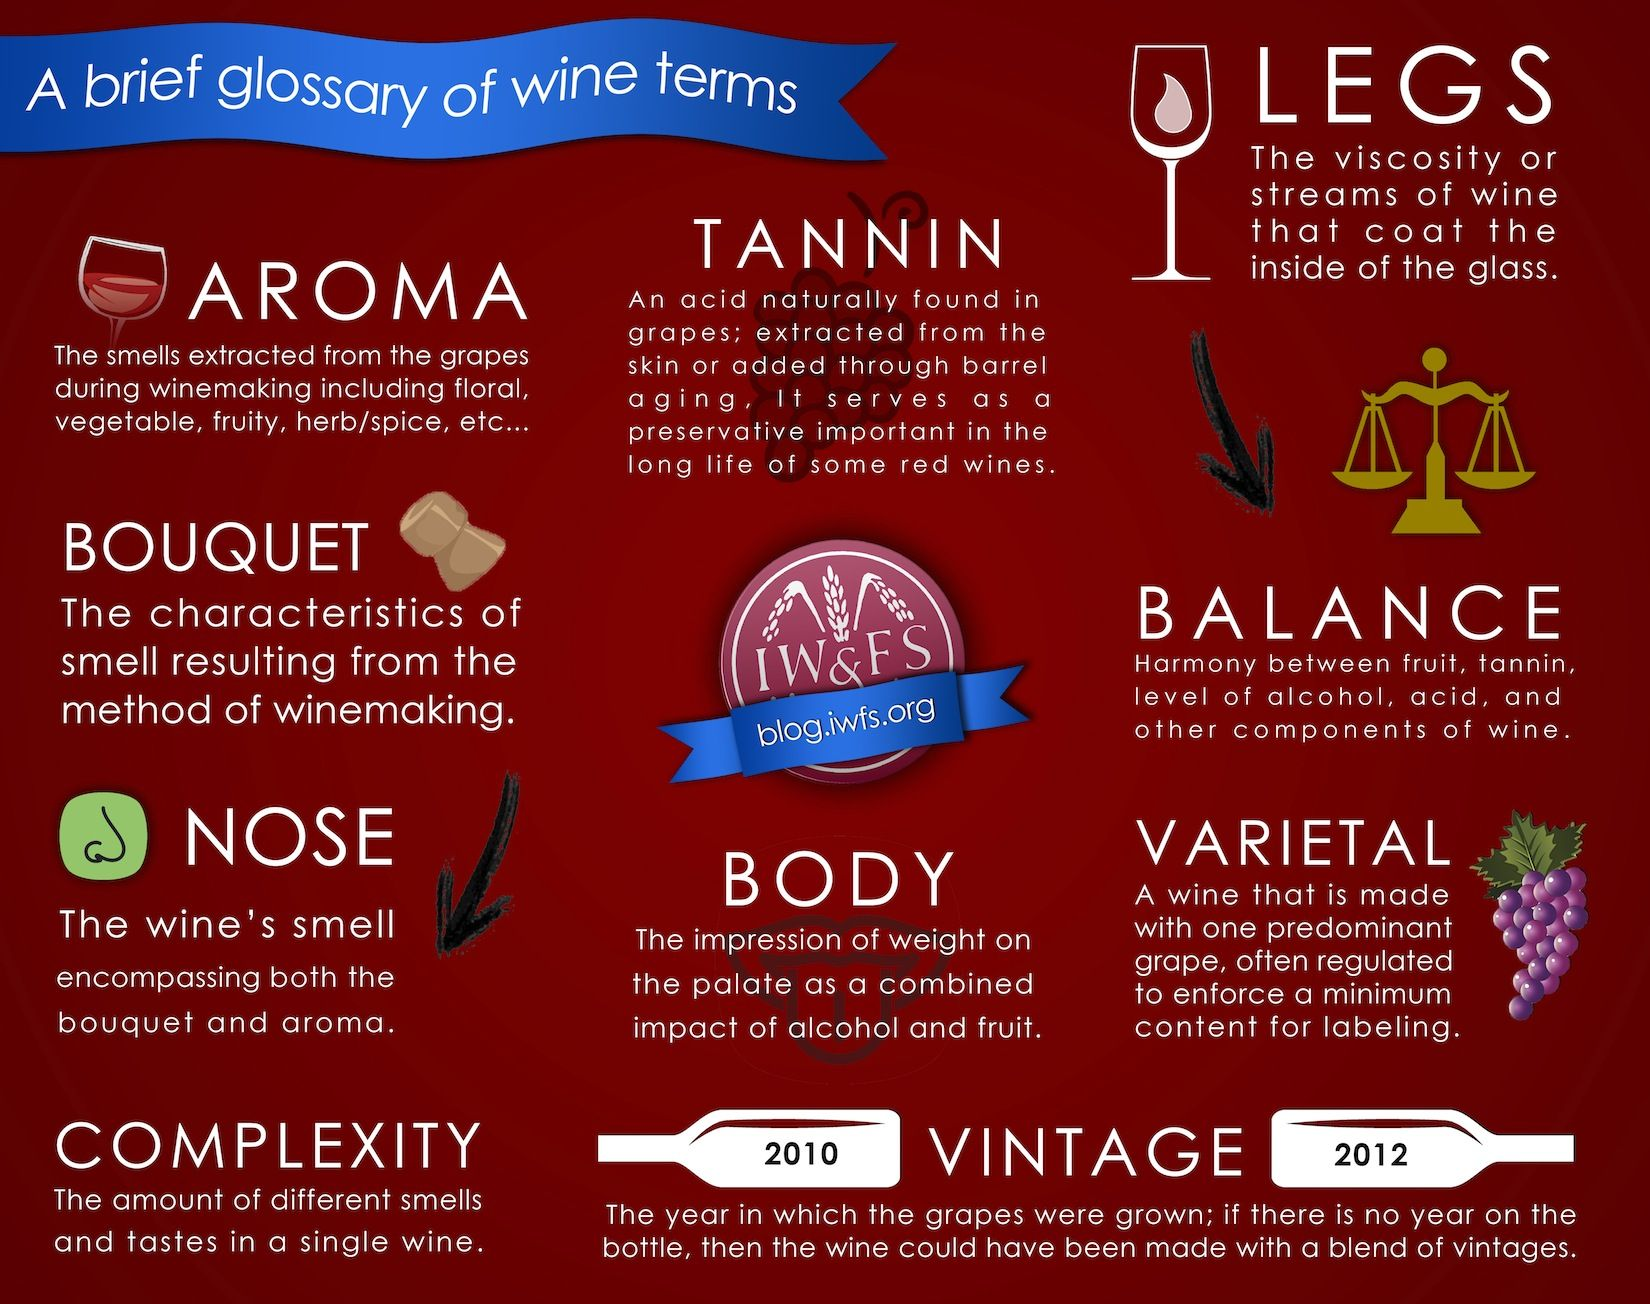 Iwfs Blog Defining Ten Commonly Used Wine Terms In The Form Of An Infographic Wine Terms Wine Recipes Wine